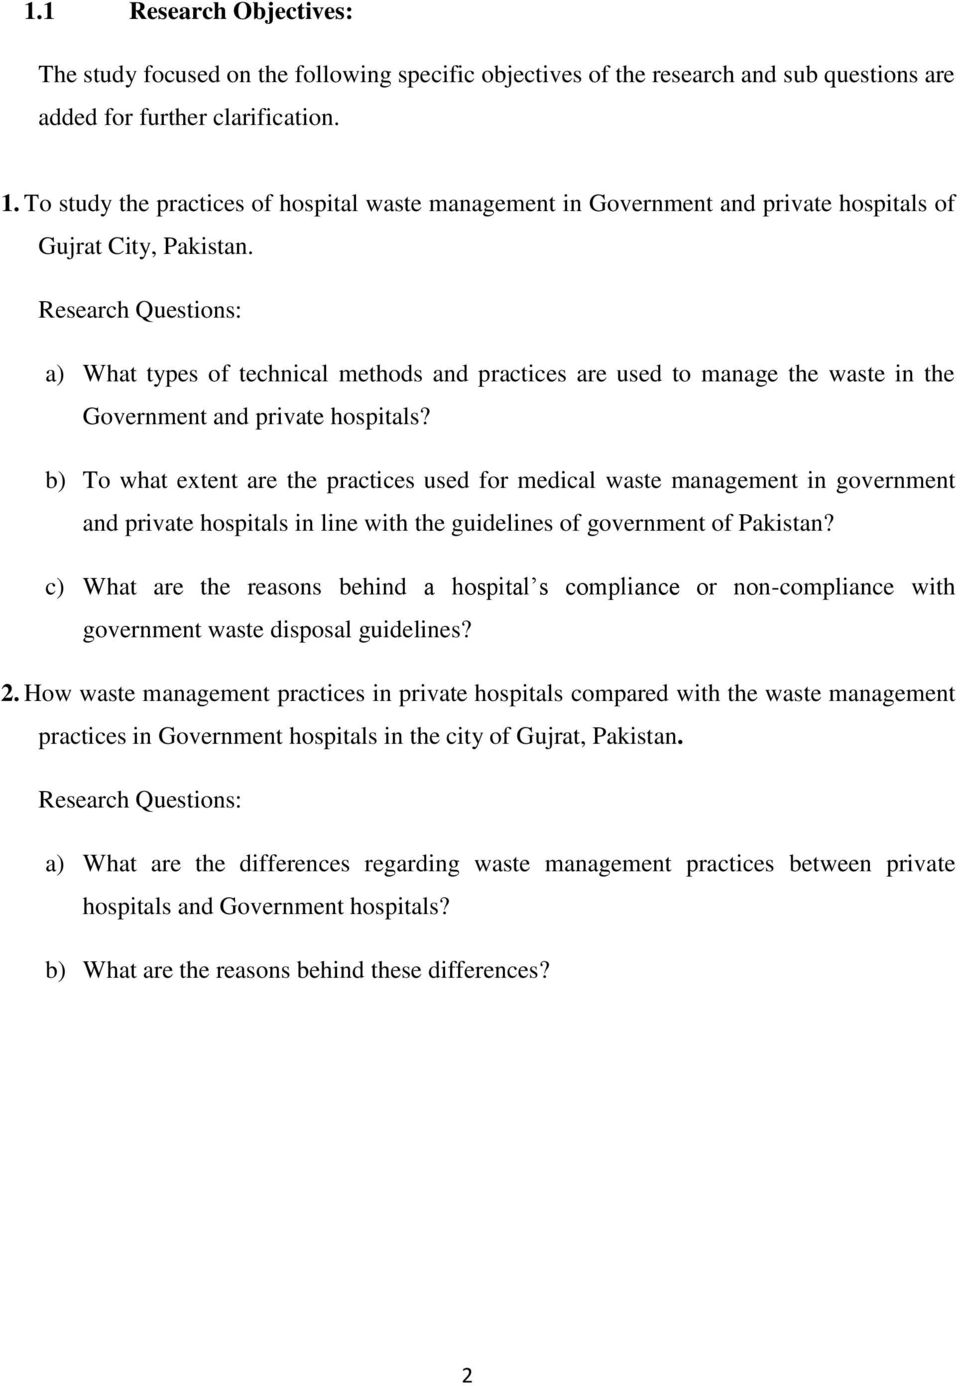 comparison between private hospital and government hospital